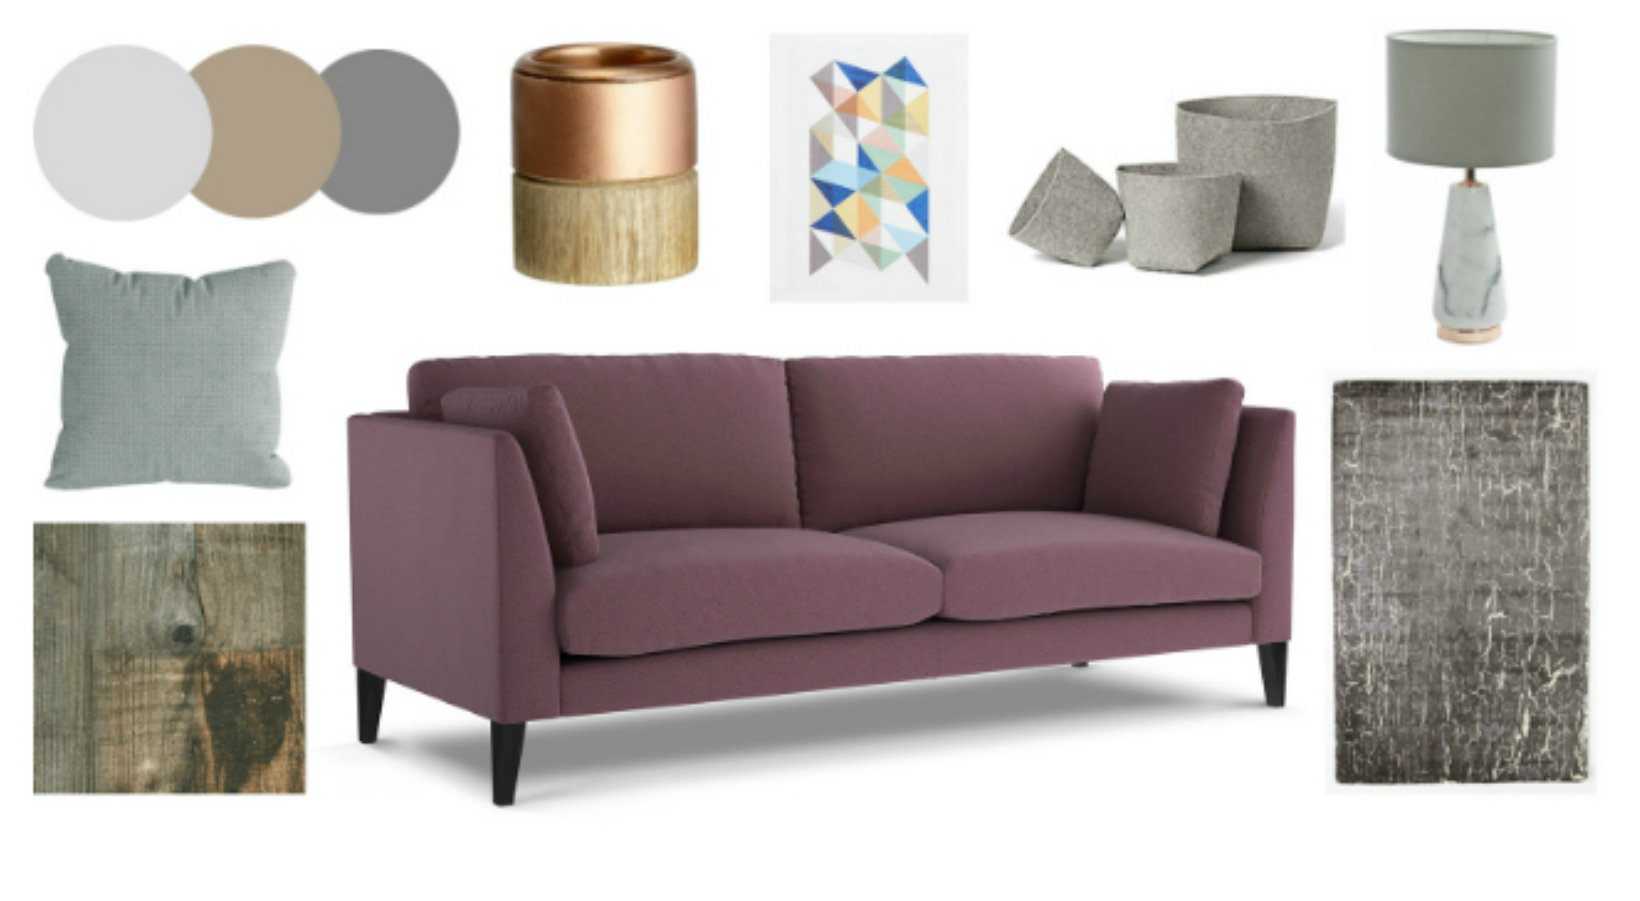 Get The Look - Philo Sofa